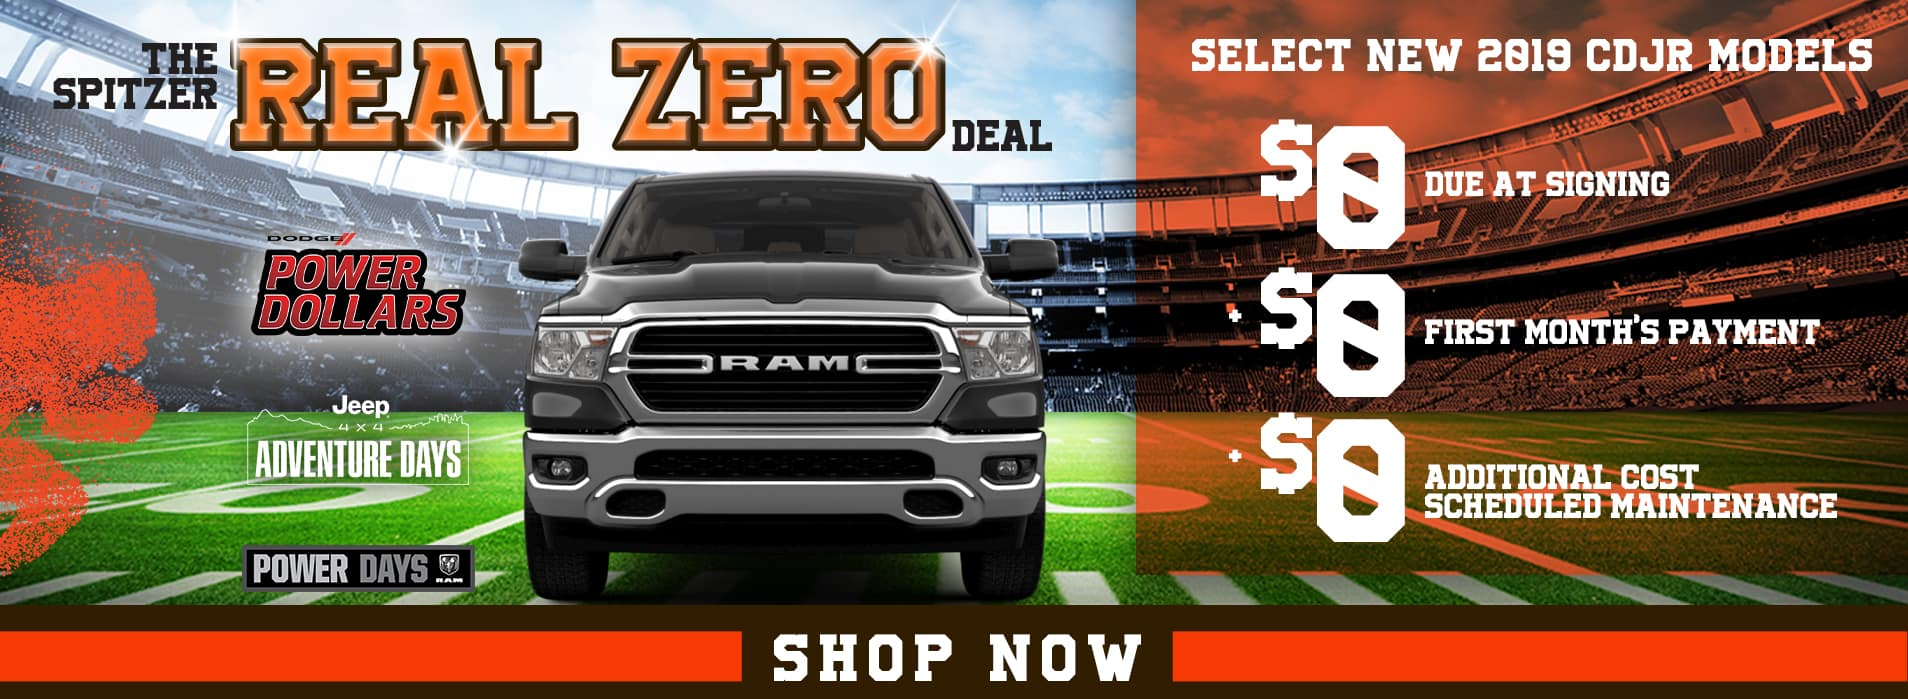 Real Zero Deal | $0 due at signing, $0 first month's payment, $0 cost scheduled maintenance